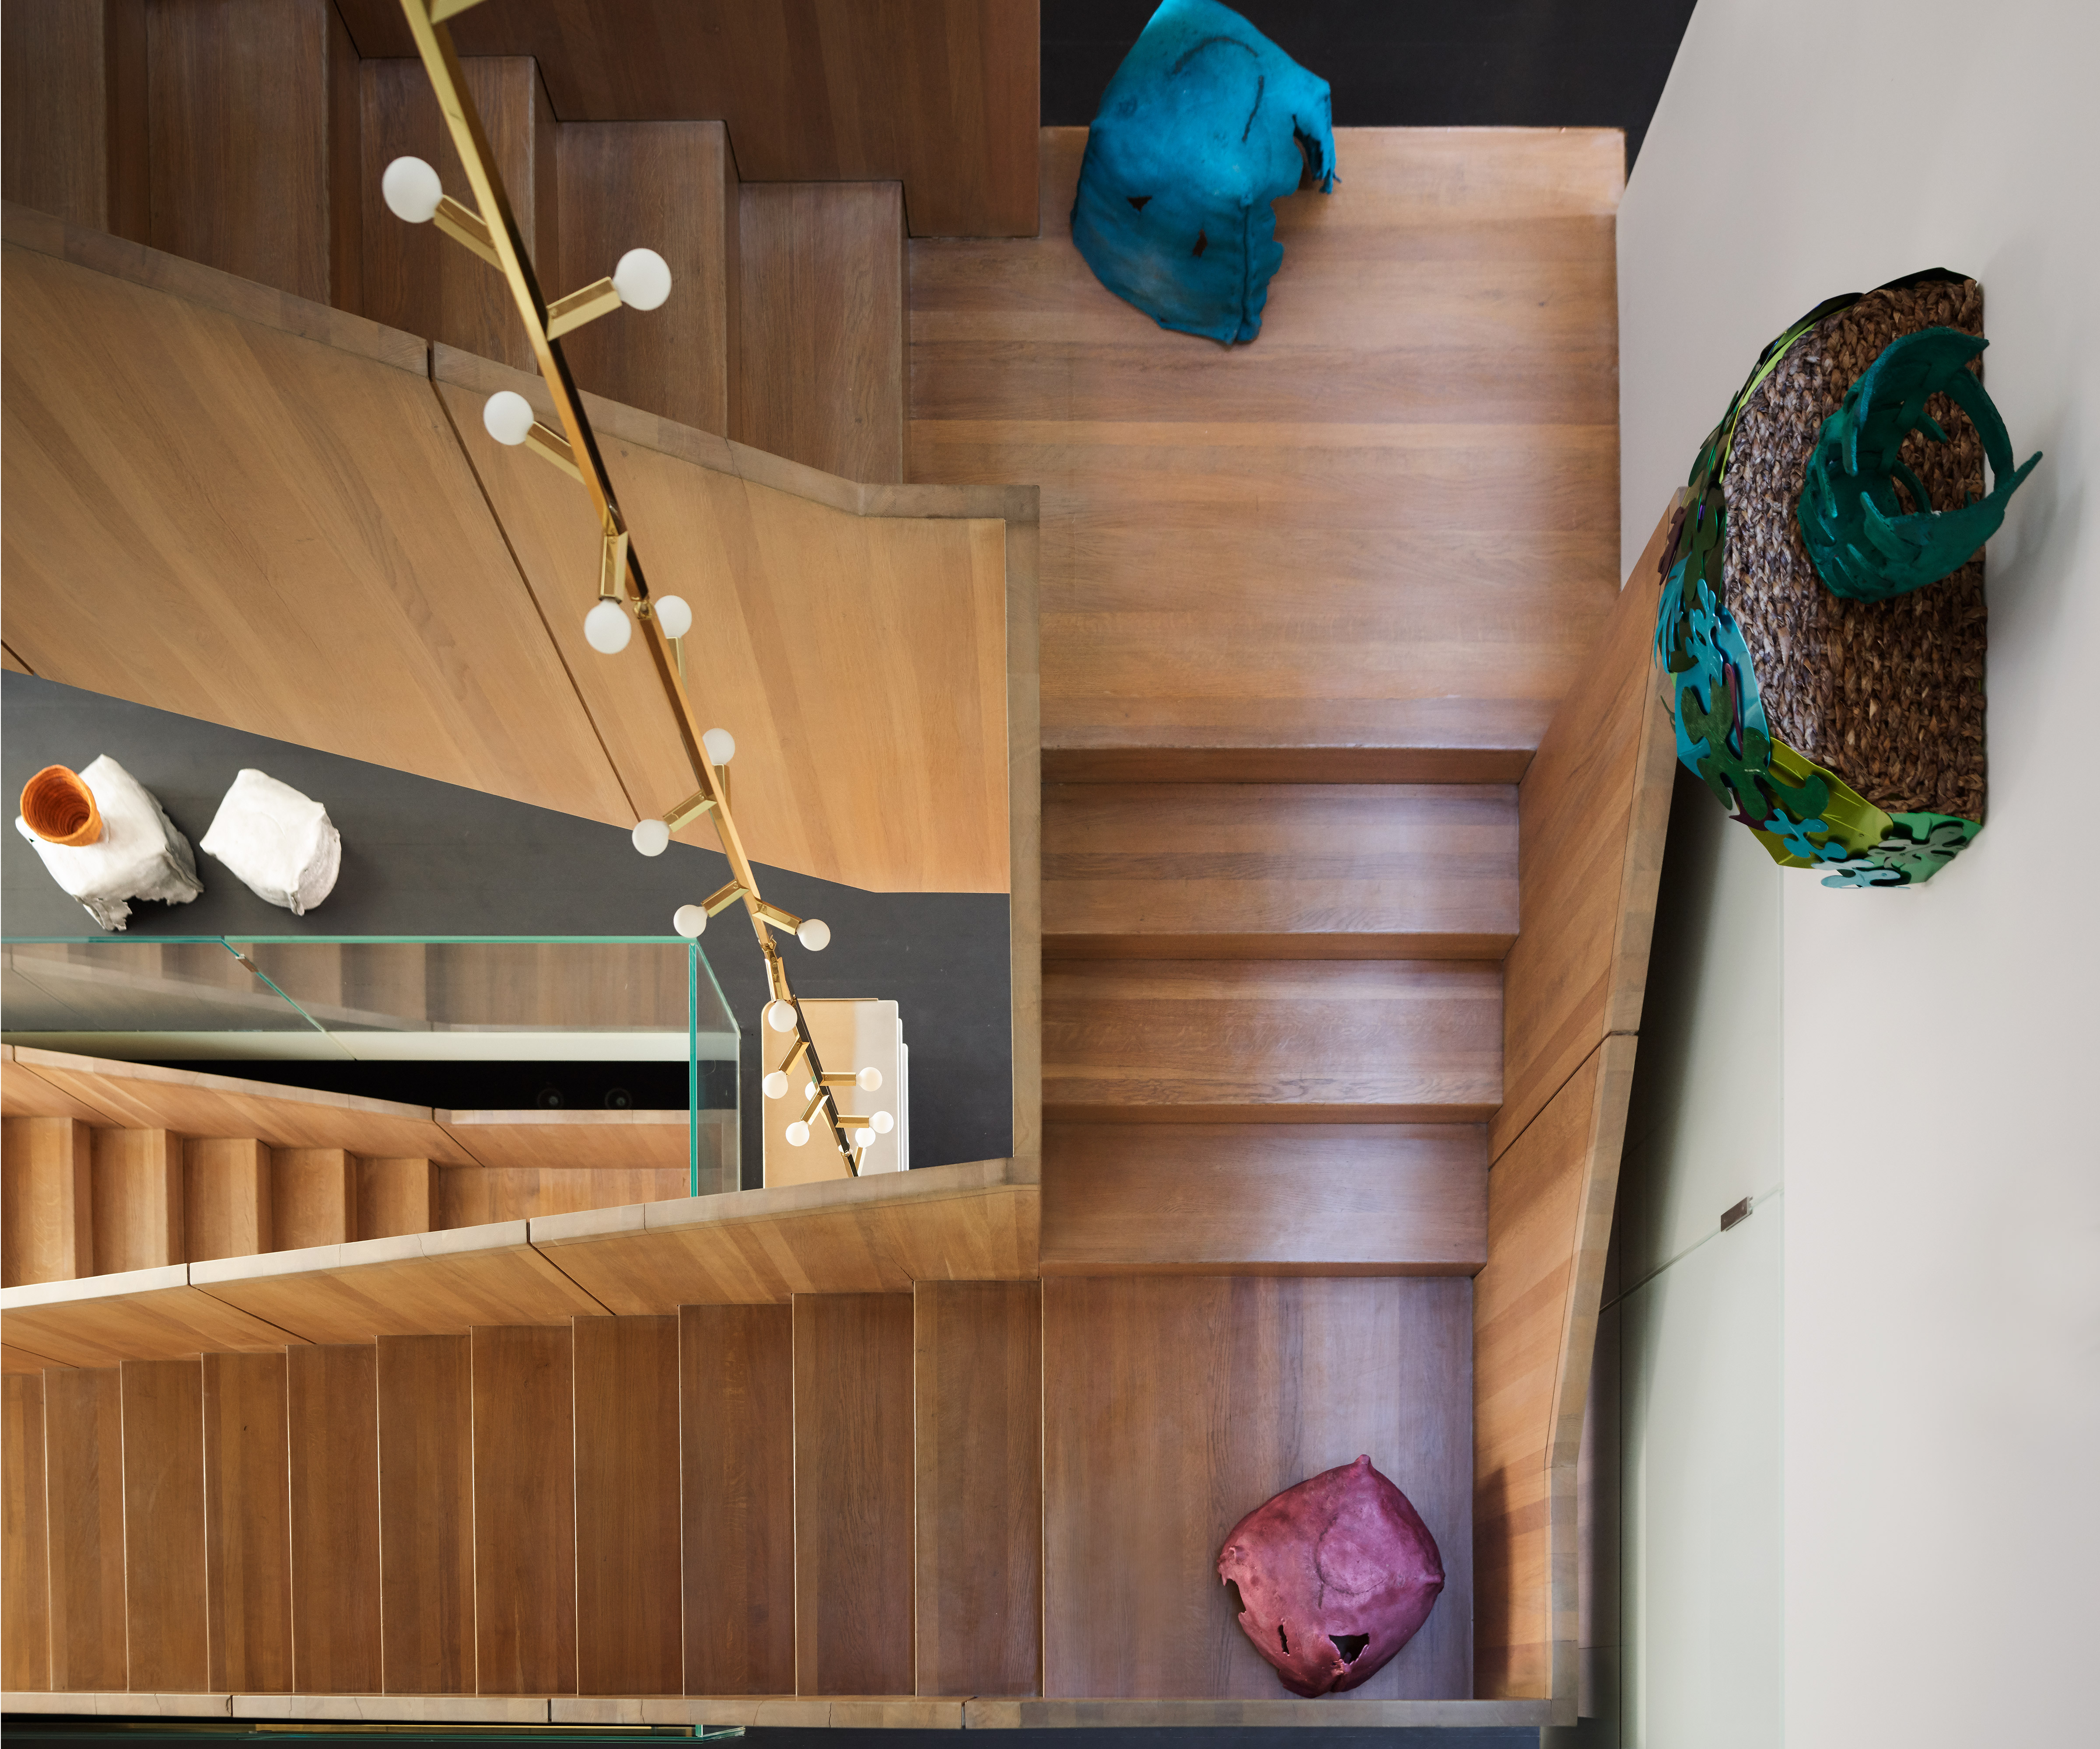 The David Chipperfield-designed staircase in Casa Perfect New York. Image: Douglas Friedman